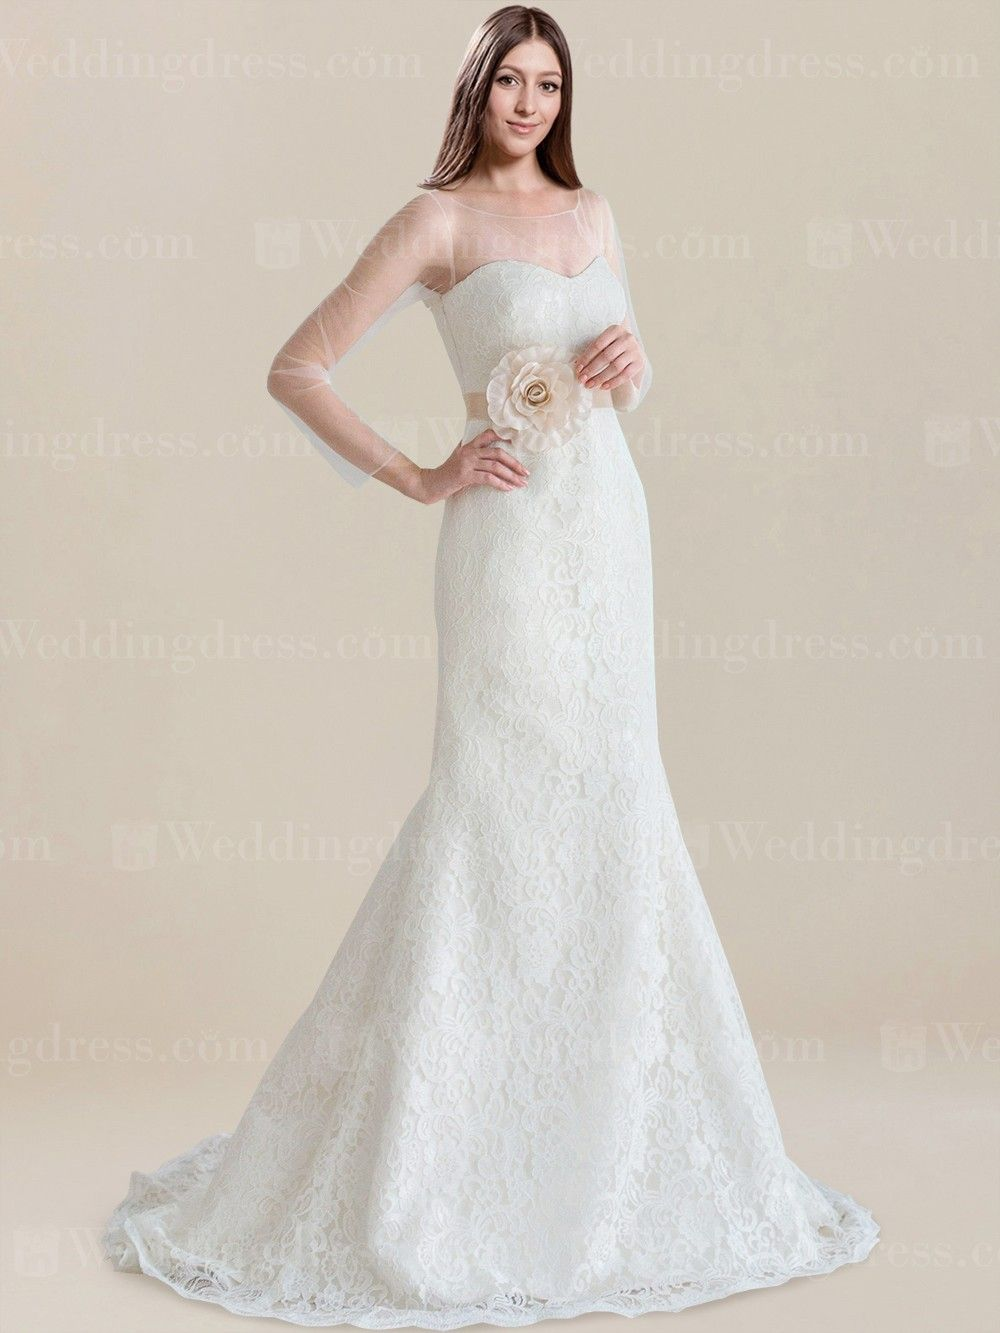 Lace wedding dress with long sleeves sv lace design and do you